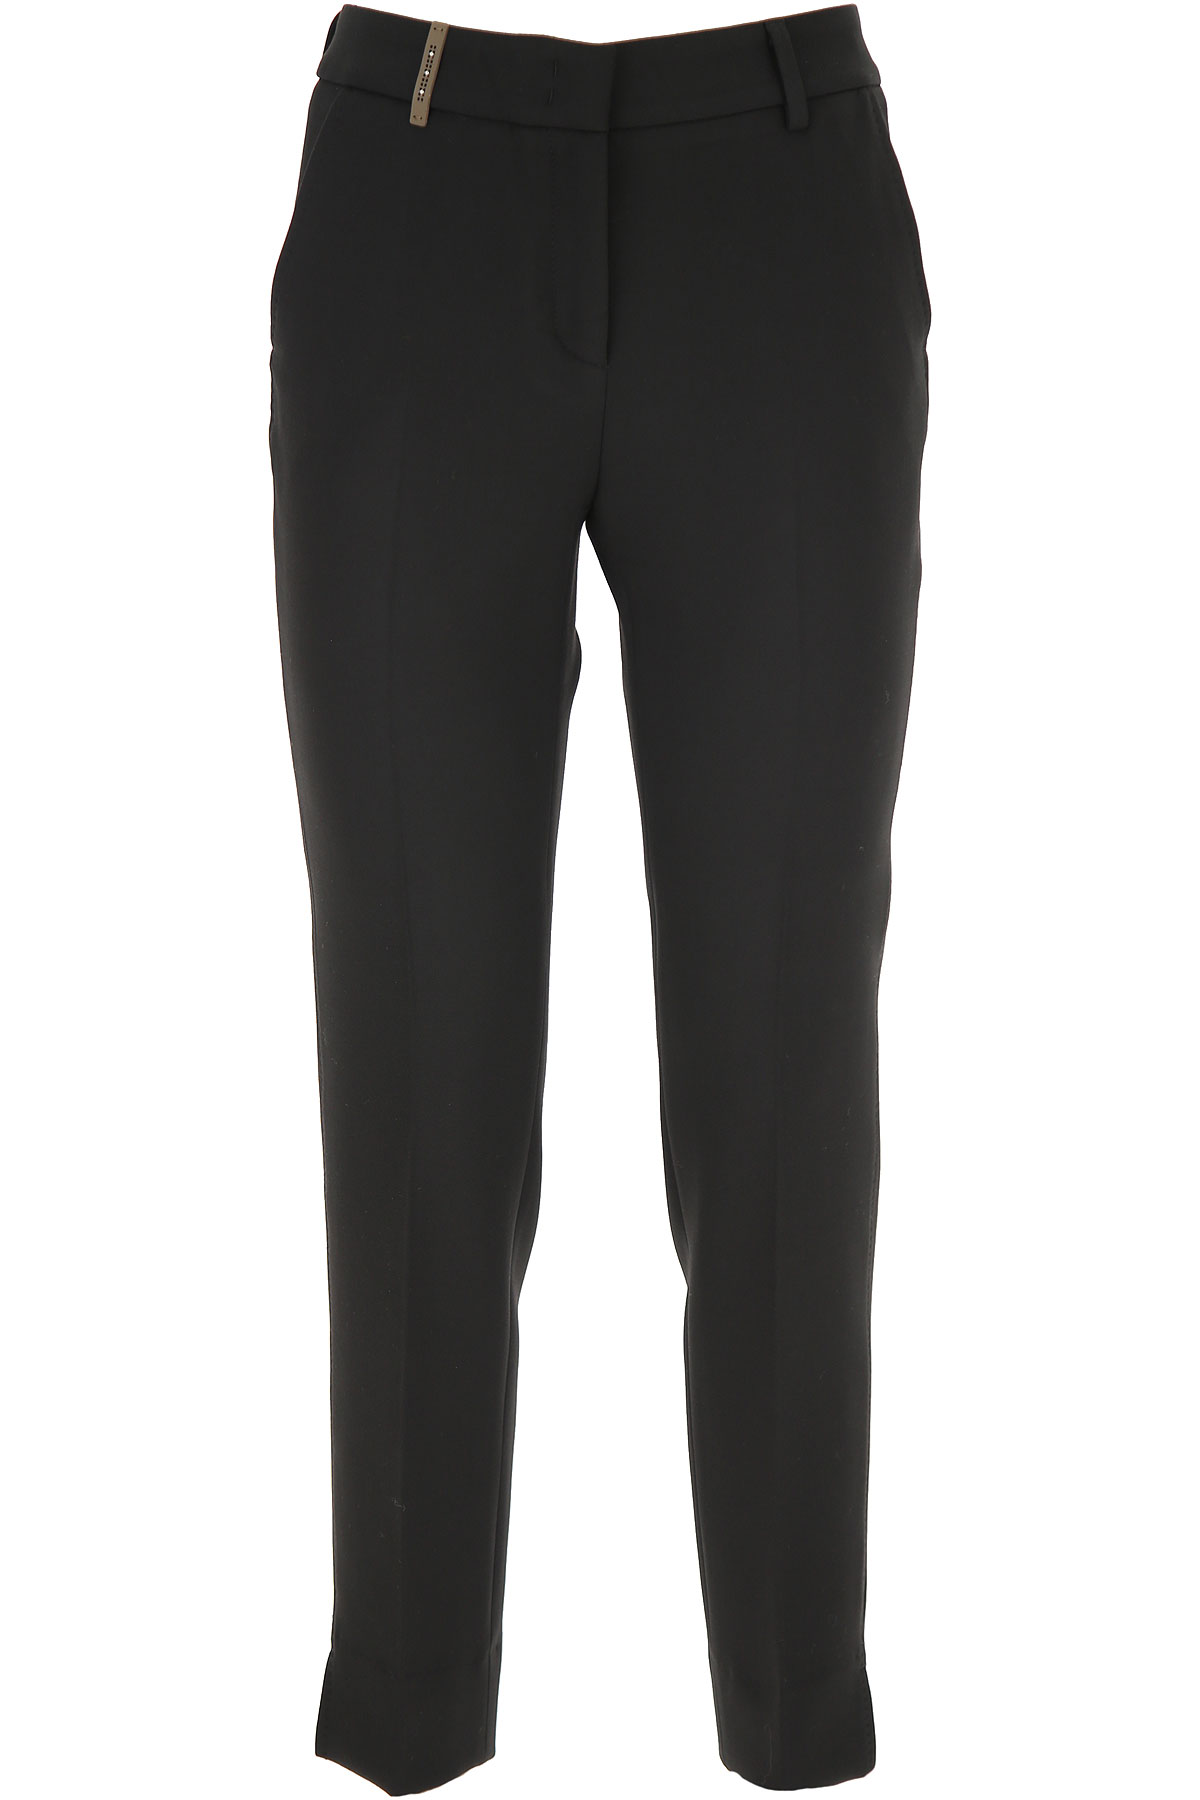 Peserico Pants for Women On Sale, Black, polyester, 2019, 26 30